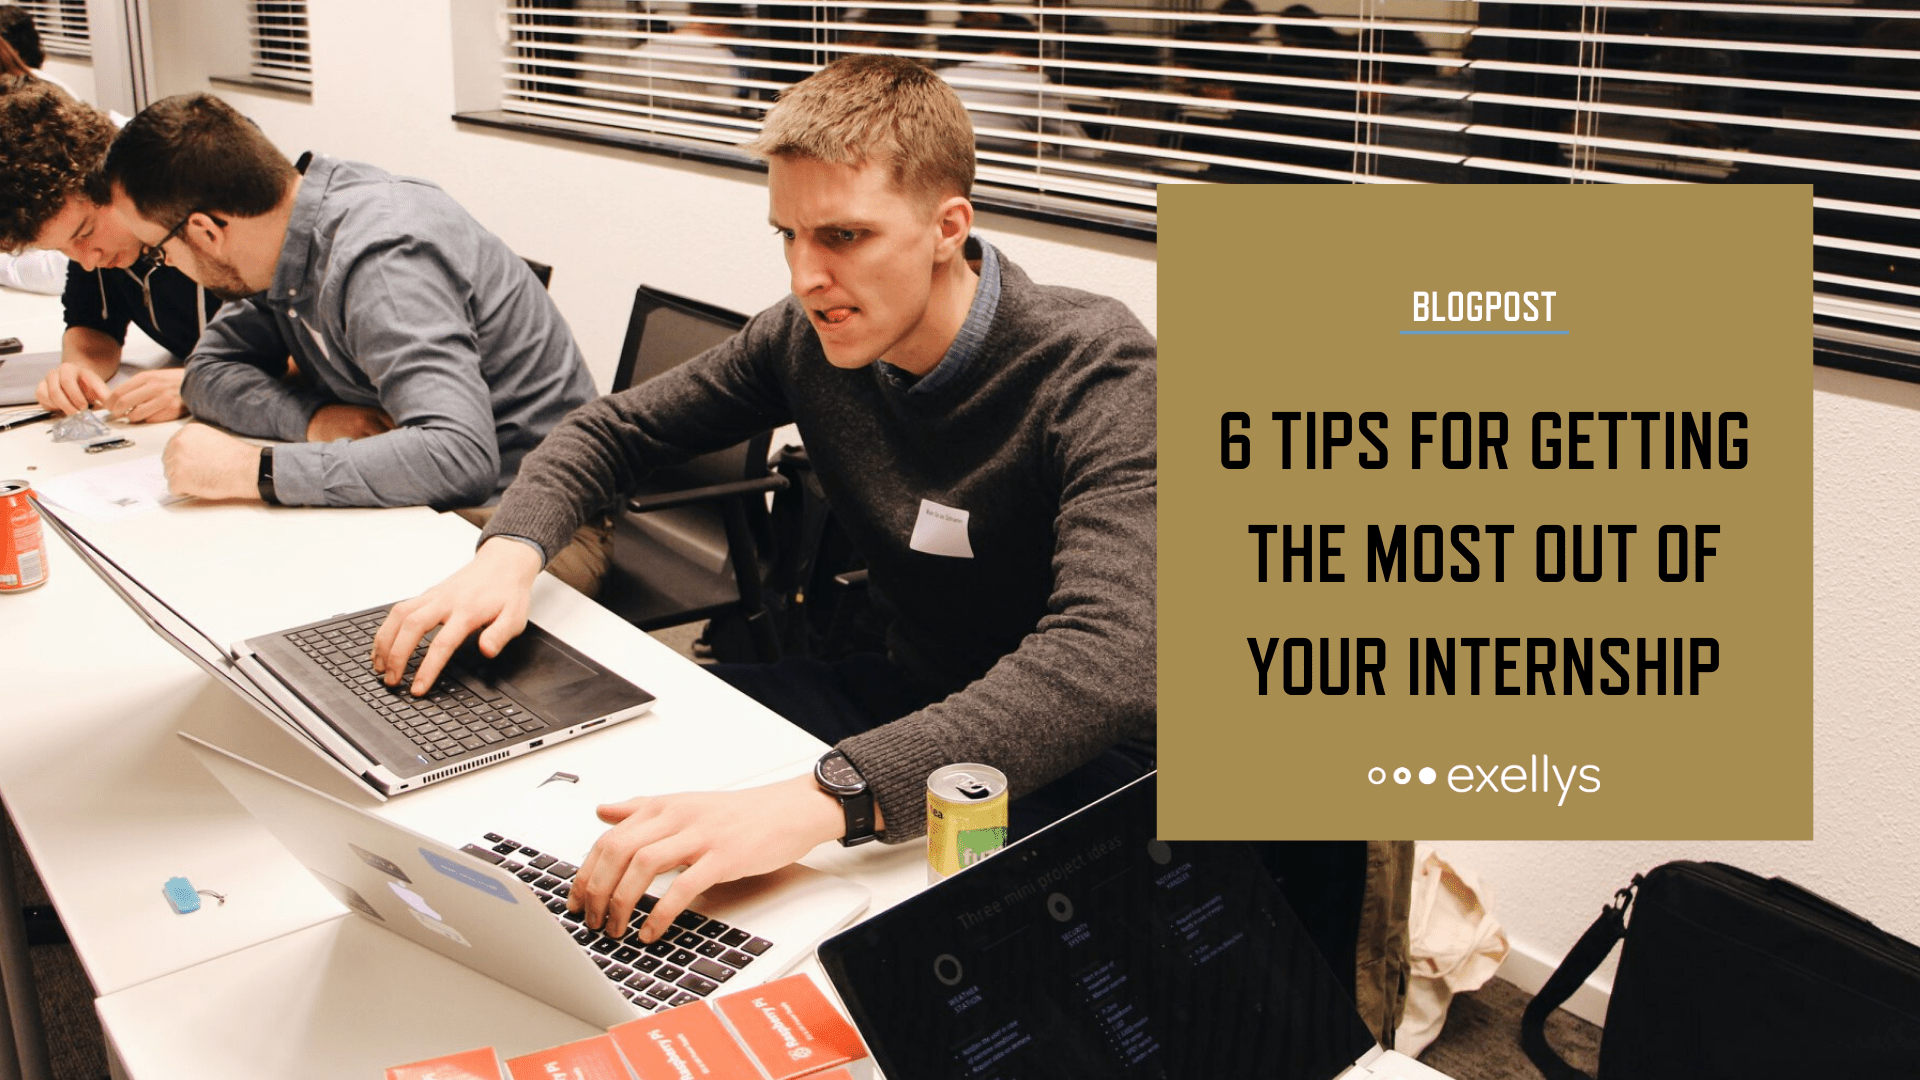 6 Tips for getting the most out of your internship